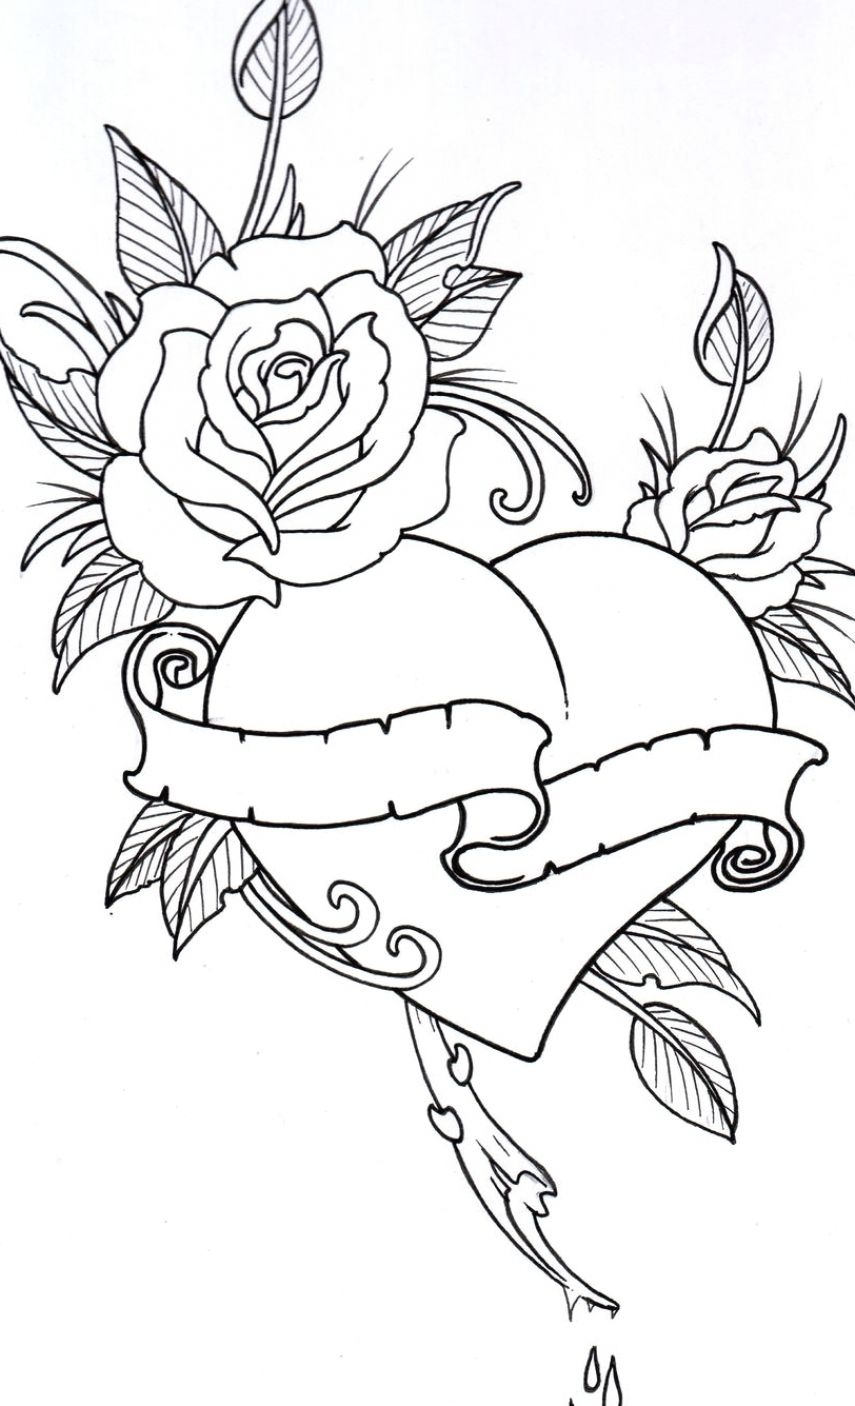 Roses Hearts Drawings : roses, hearts, drawings, Tattoo, Ideas, Women, Coloring, Books,, Pages,, Pages